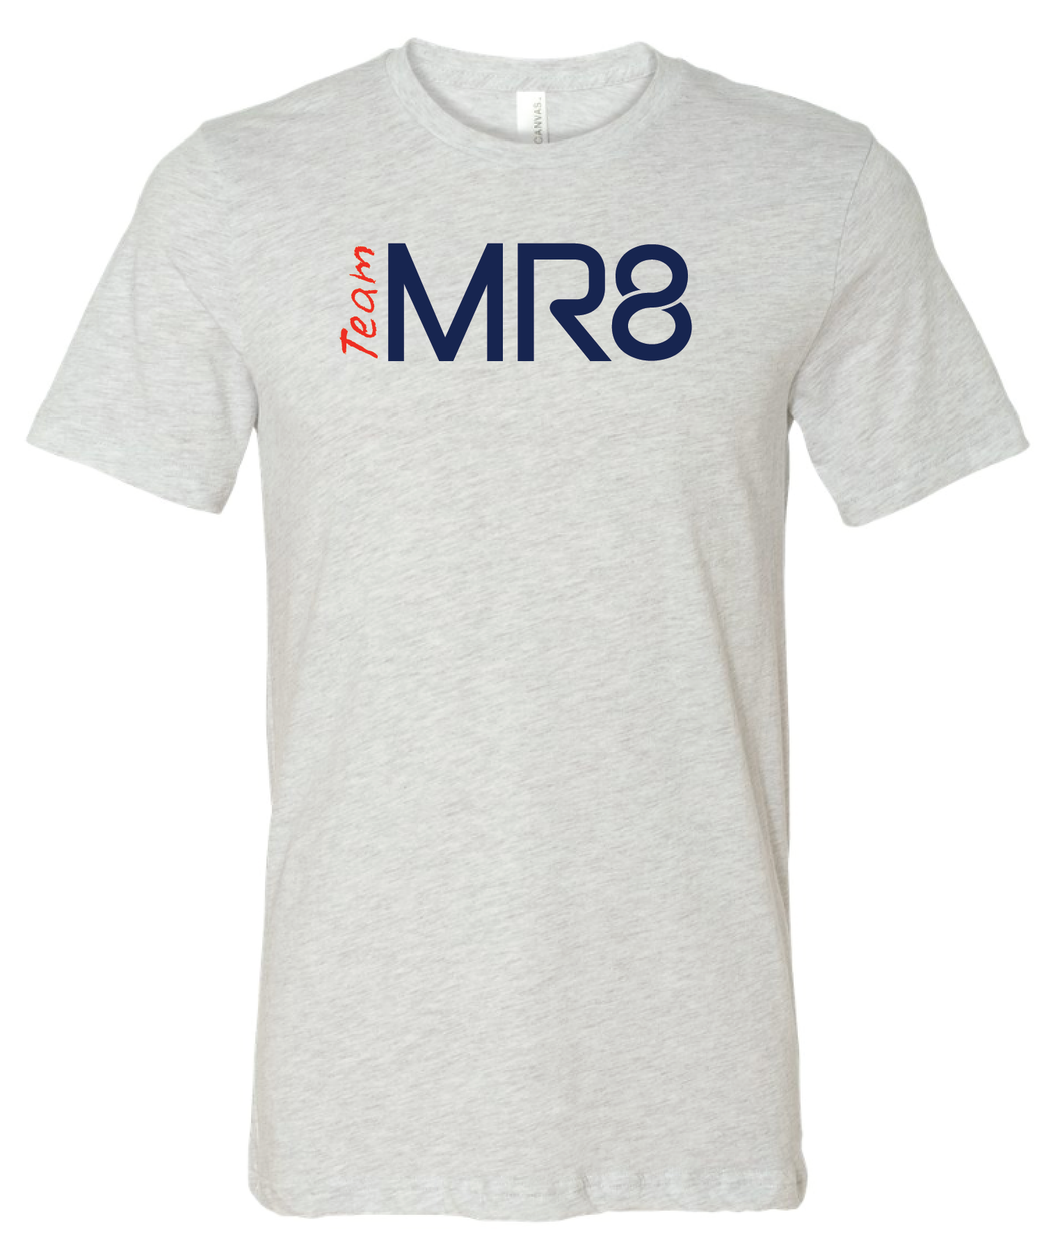 Team MR8 Short Sleeve - Ash Grey